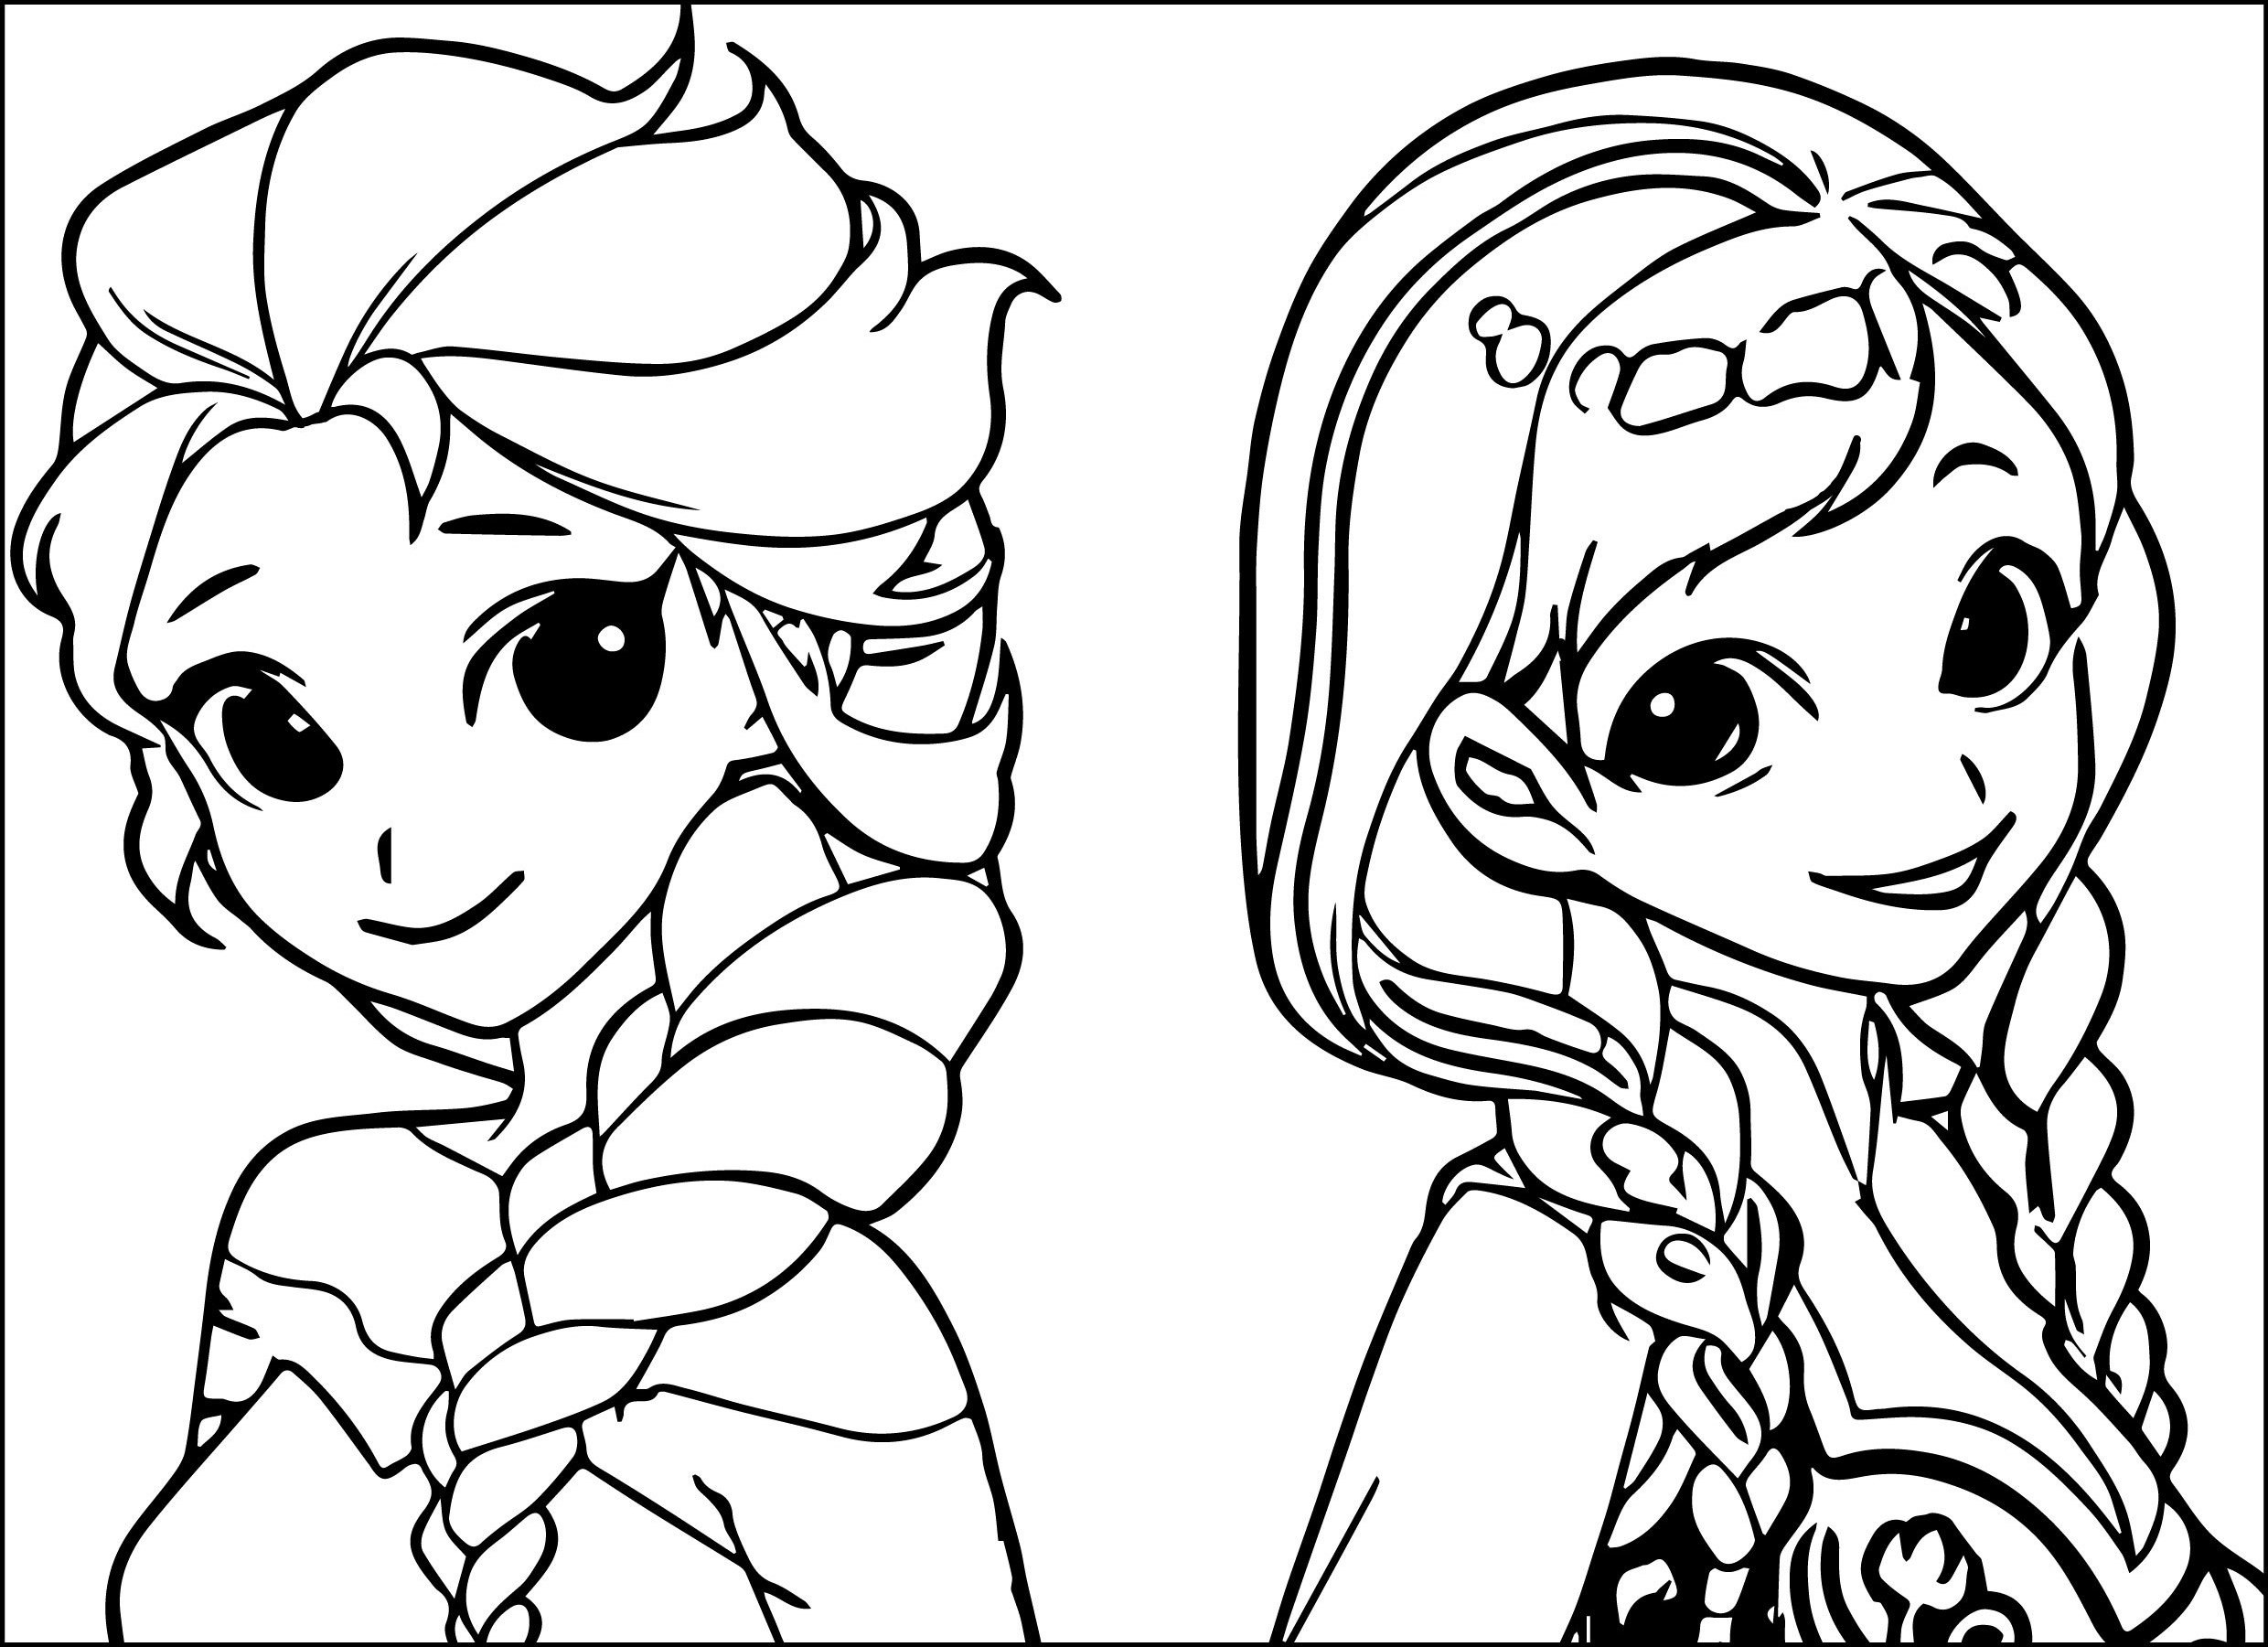 frozen drawings to color frozen drawing paper at getdrawings free download color frozen to drawings